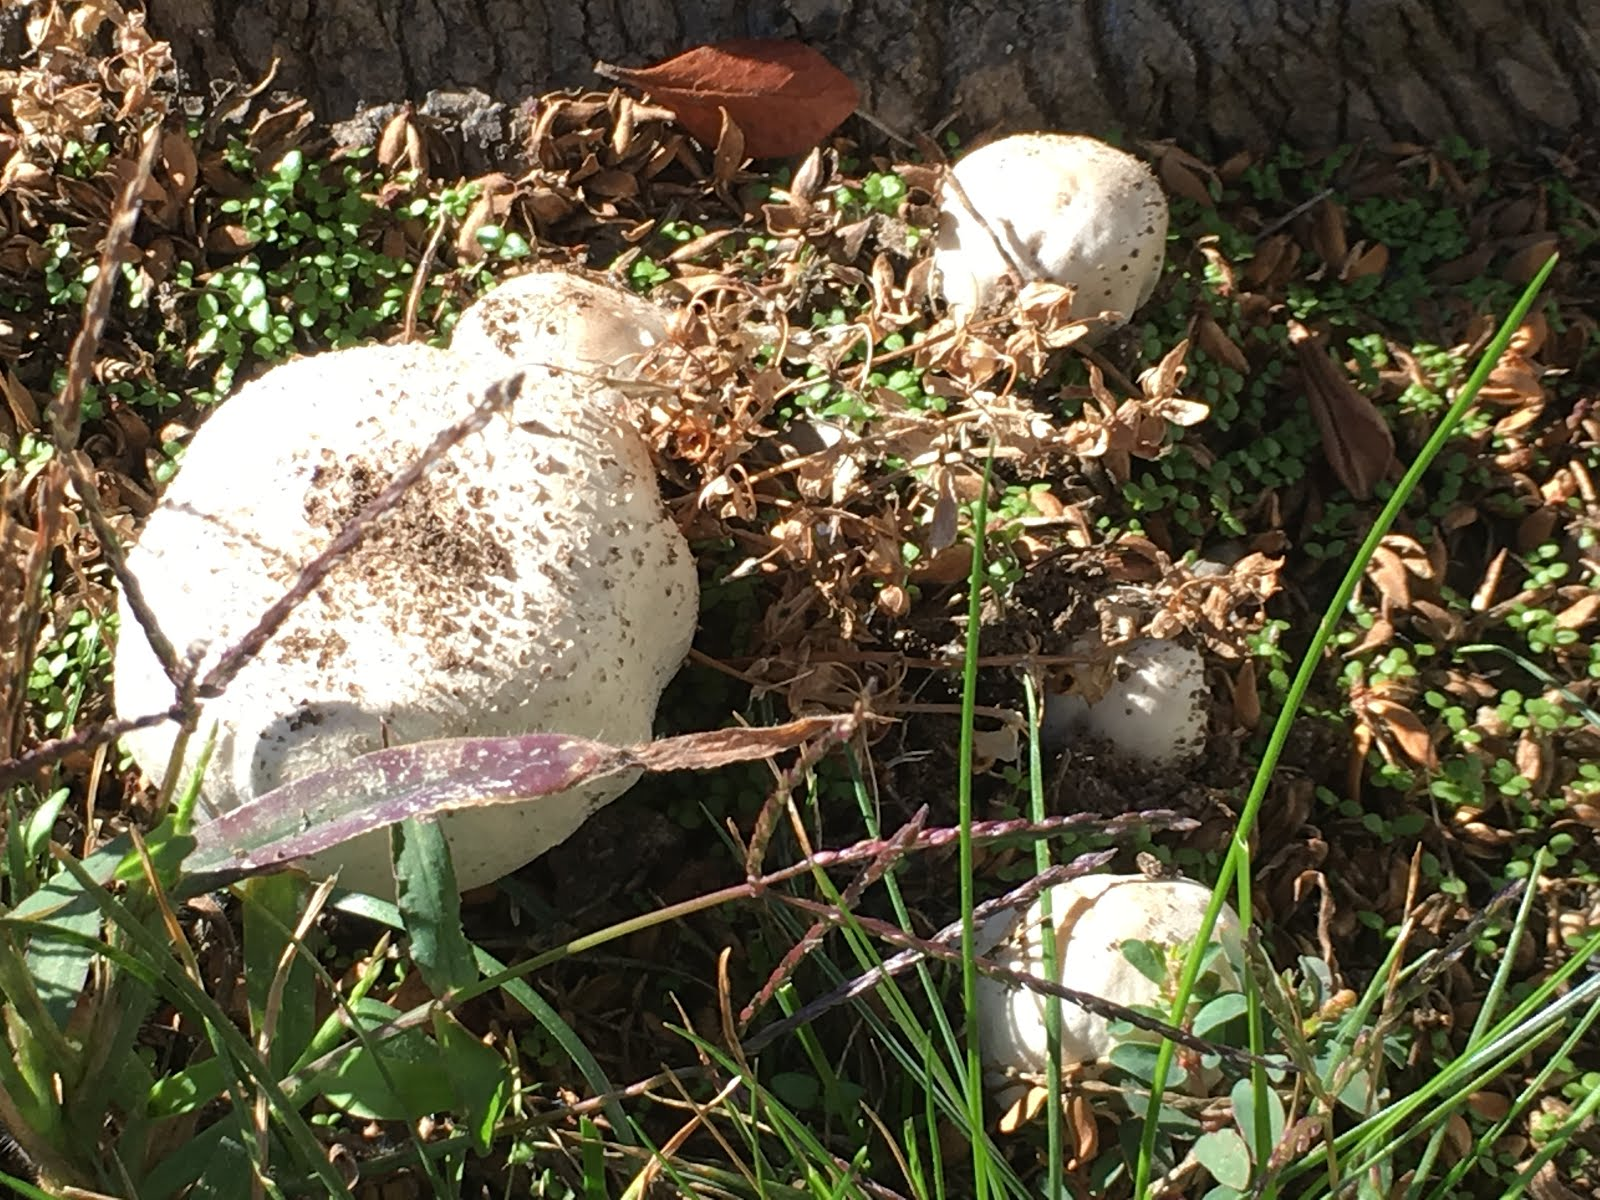 Scrumptious Mushrooms in My Yard, but Poisonous